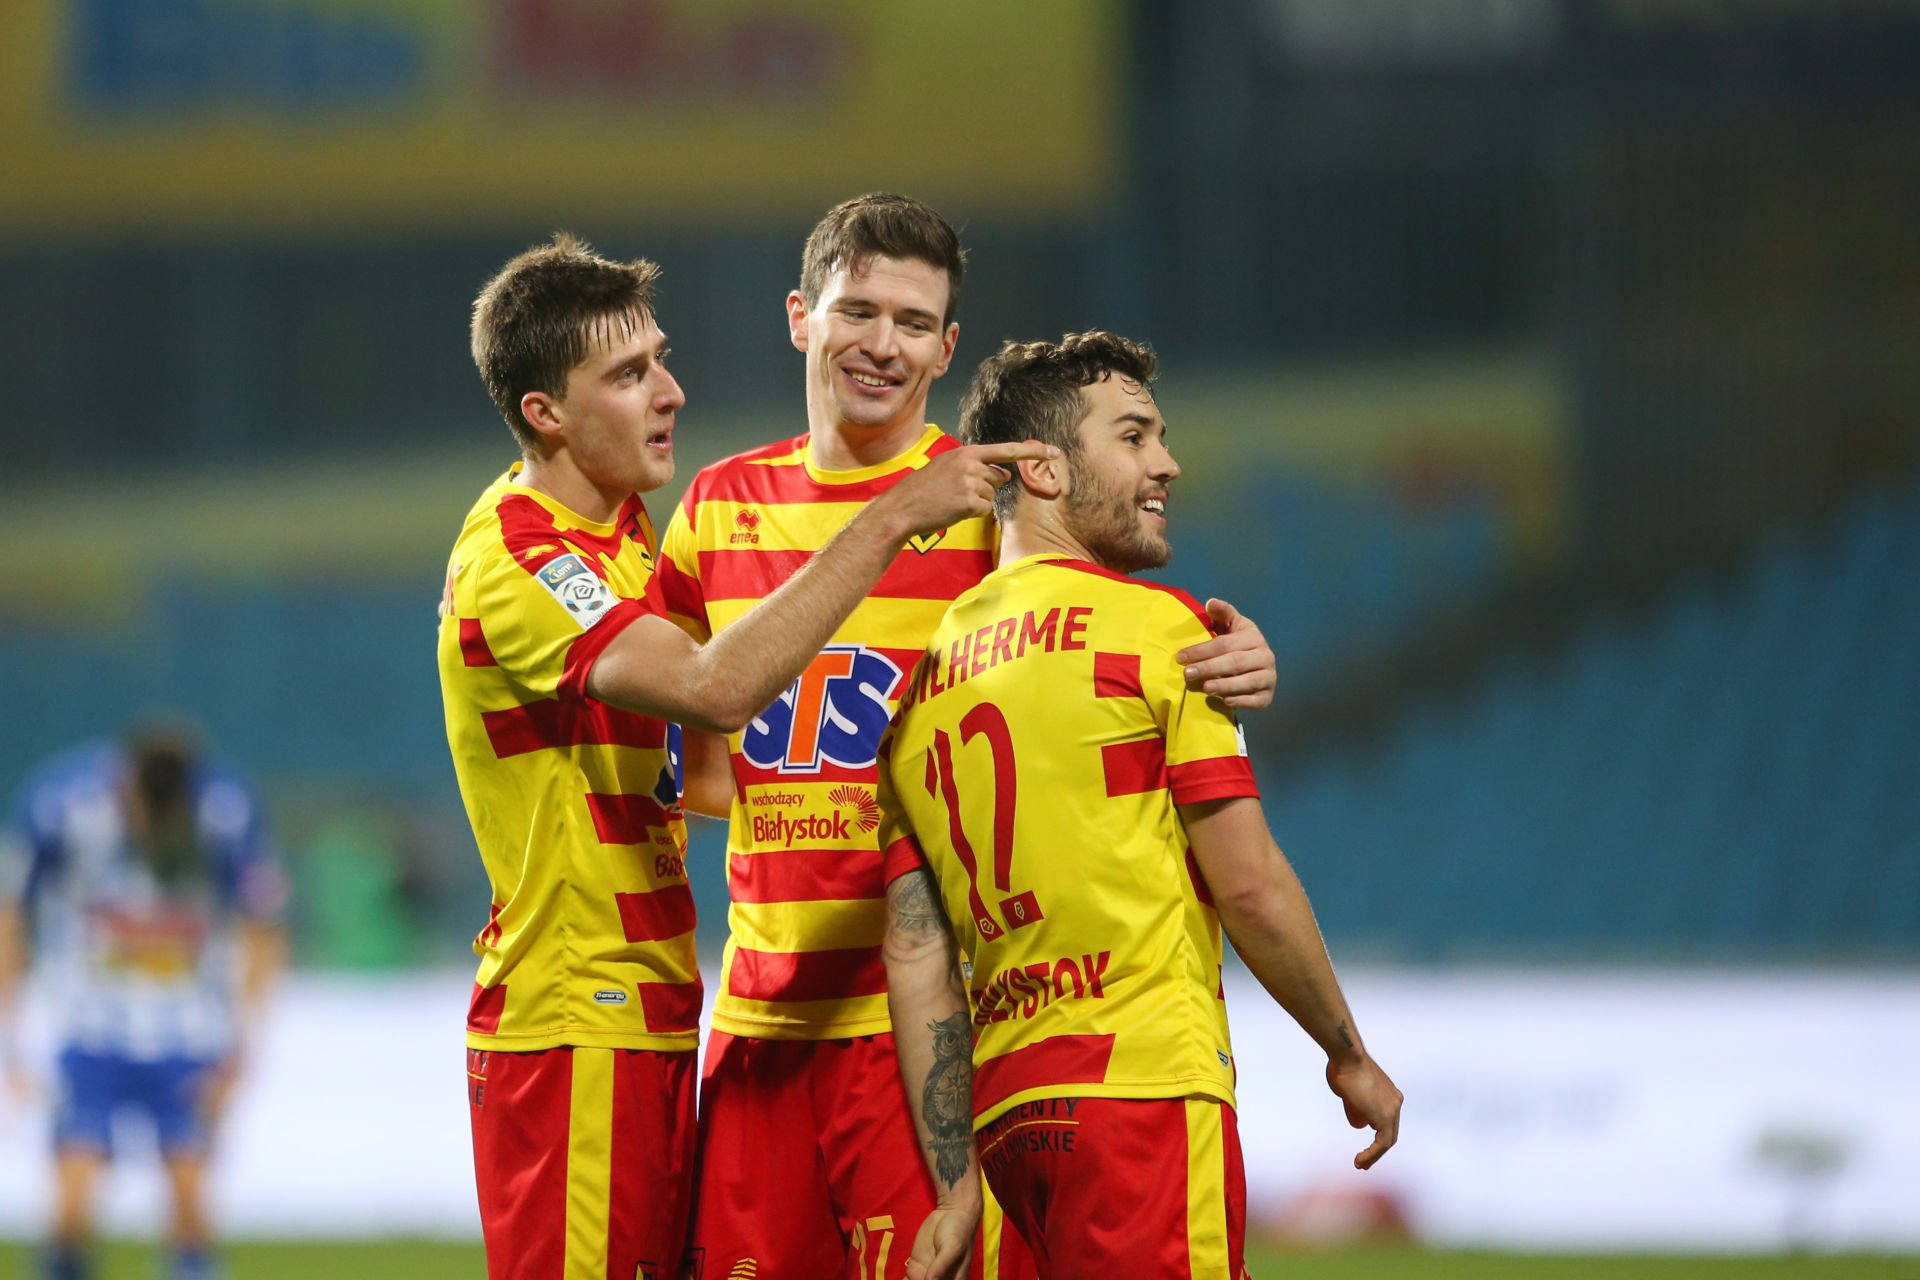 PLOCK 04.11.2017 MECZ 15. KOLEJKA LOTTO EKSTRAKLASA SEZON 2017/18 --- POLISH FOOTBALL TOP LEAGUE MATCH: WISLA PLOCK - JAGIELLONIA BIALYSTOK 1:2 TARAS ROMANCZUK IVAN RUNJE GUILHERME SITYA FOT. PIOTR KUCZA/ 400mm.pl